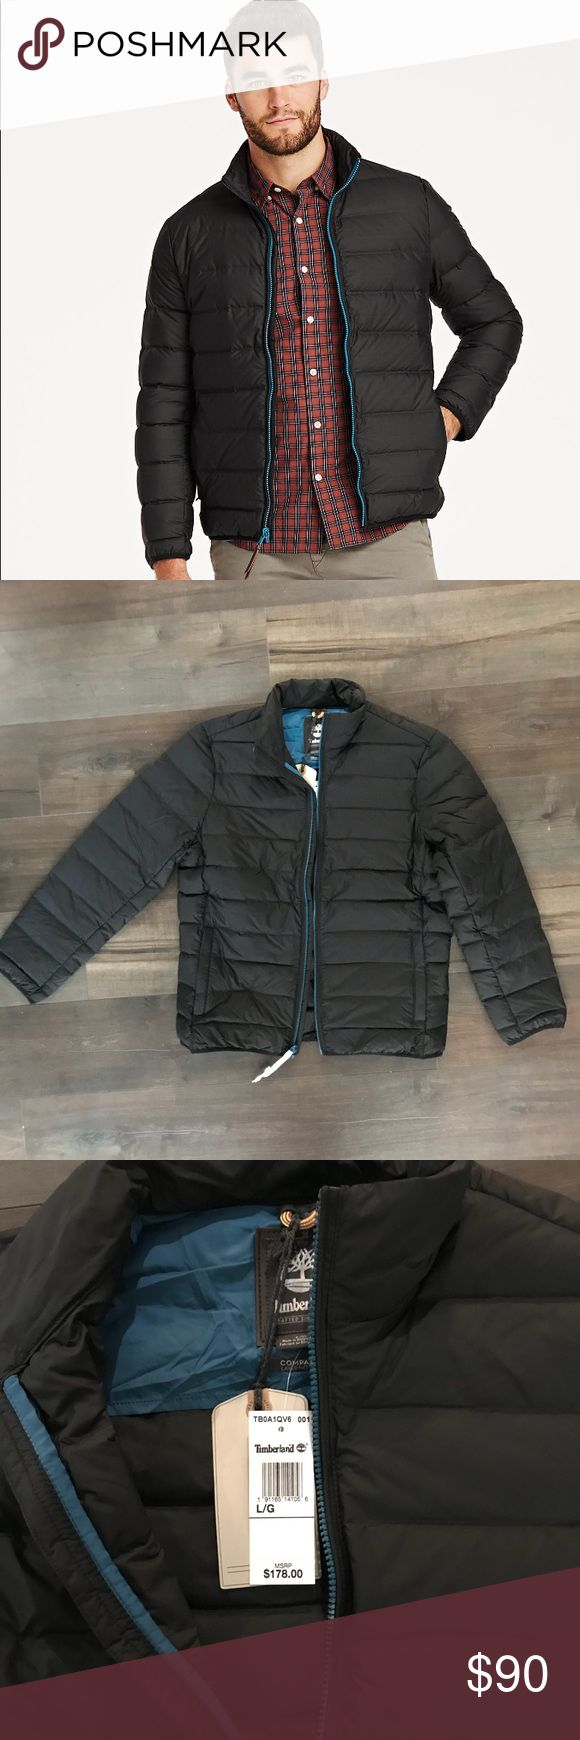 Timberland Down jacket Men's Bear Down Jacket from Timberland Timberland Jackets & Coats Puffers